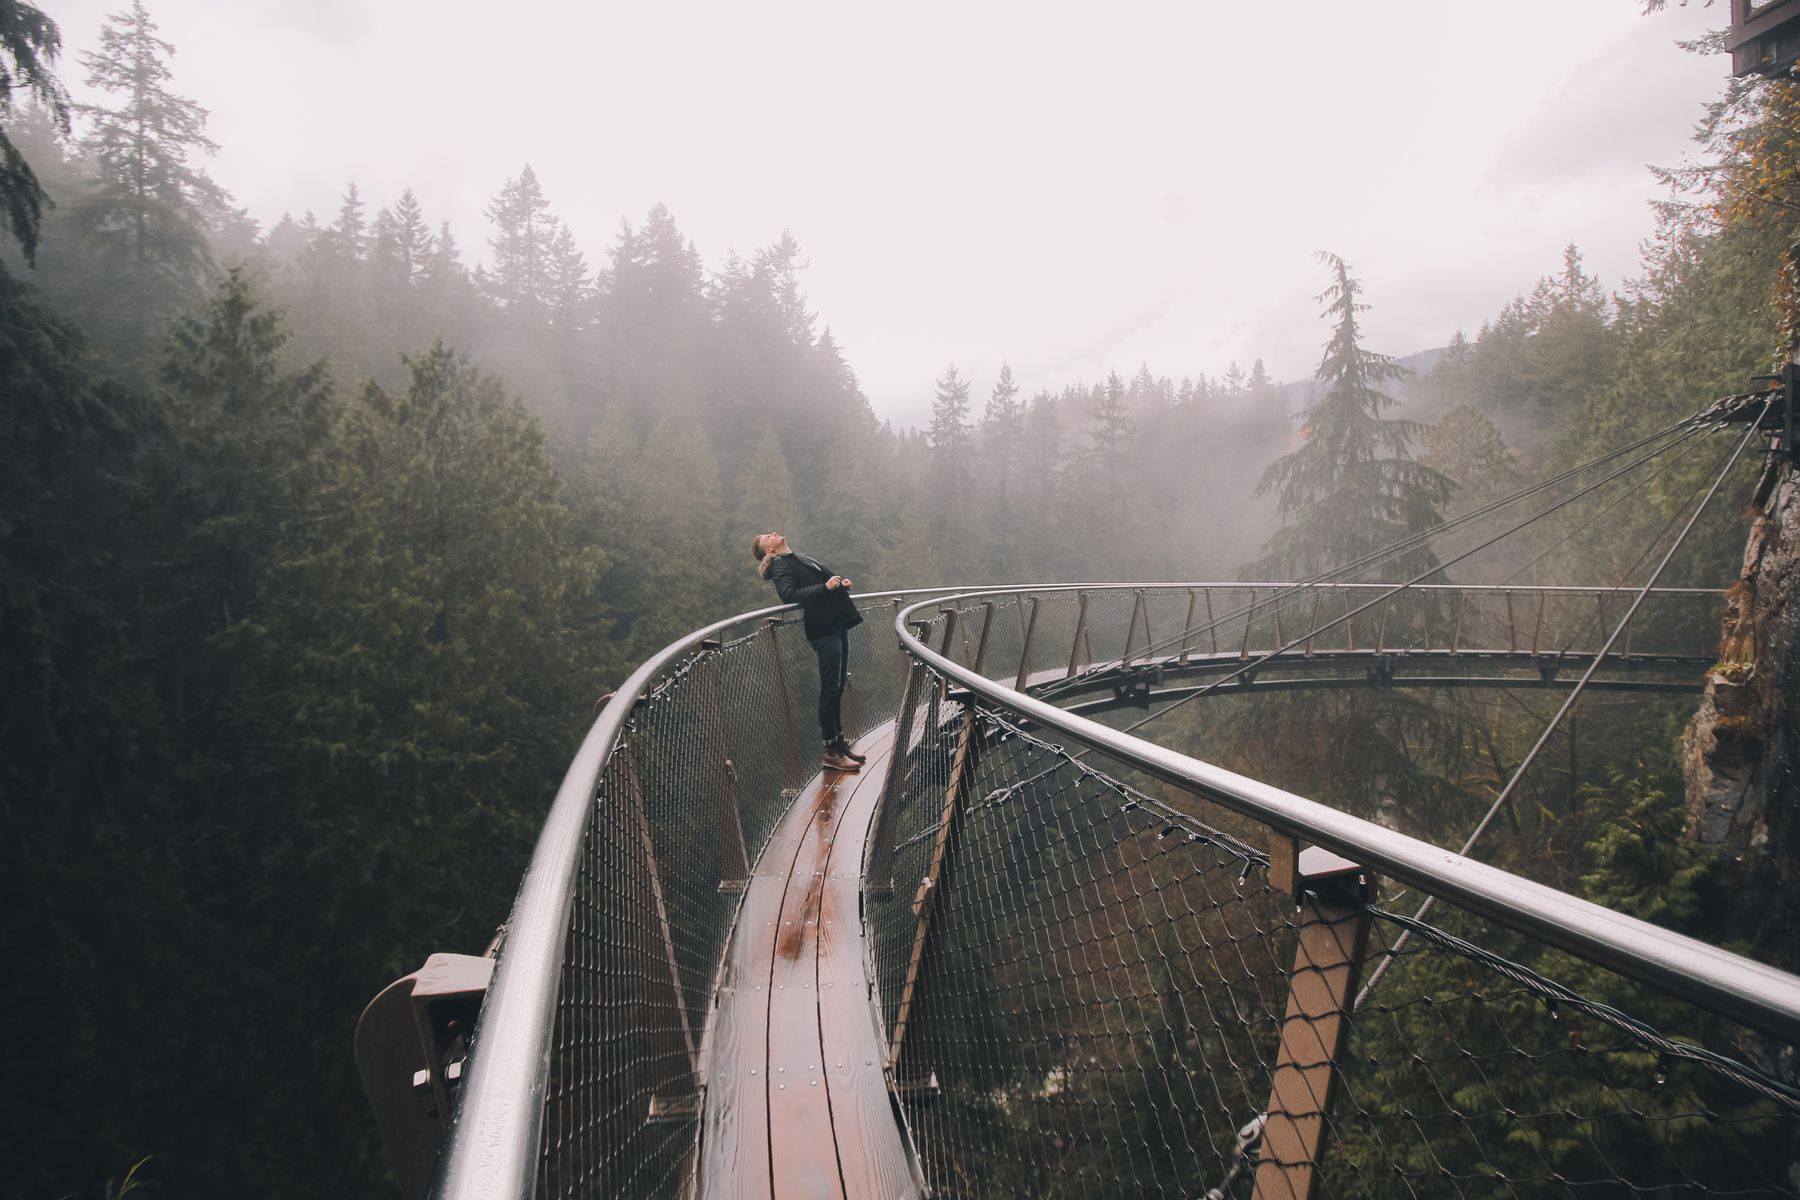 a person looking skyward while standing on an arched walkway in a misty forest